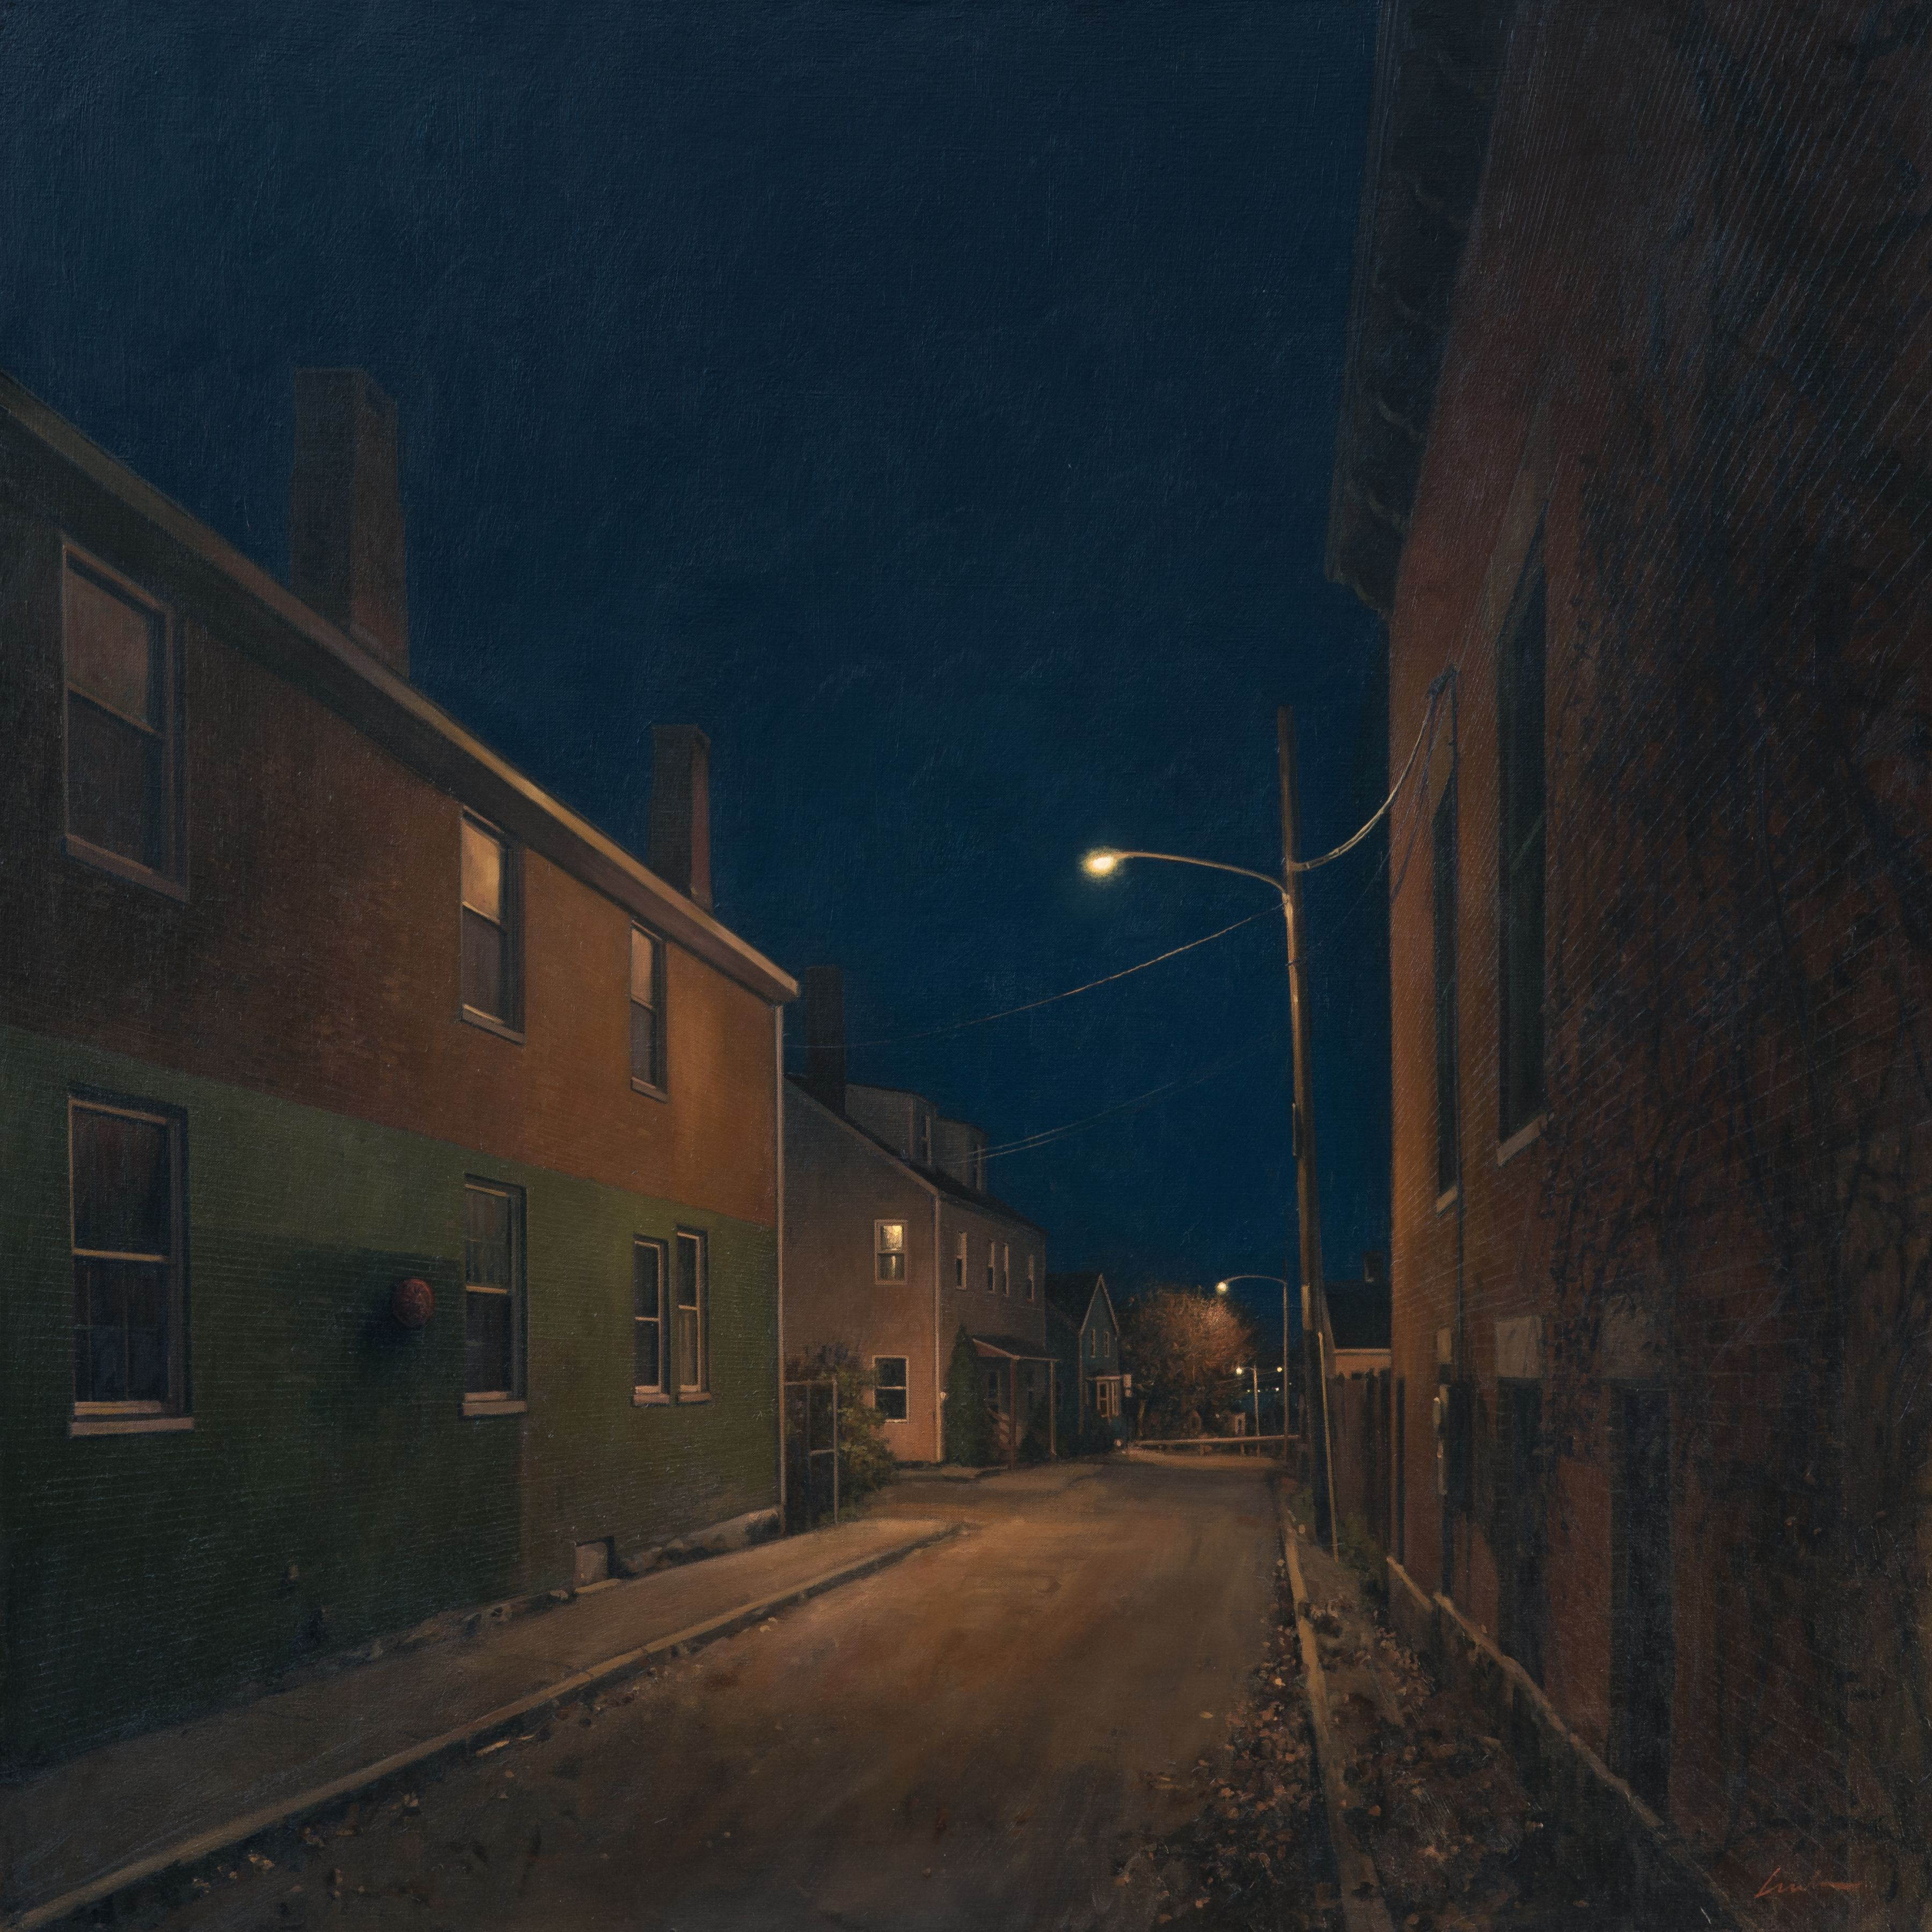 linden frederick, Night Off (SOLD), 2016, oil on linen, 36 x 36 inches, this painting inspired the short story, Alley's End, by Luanne Rice